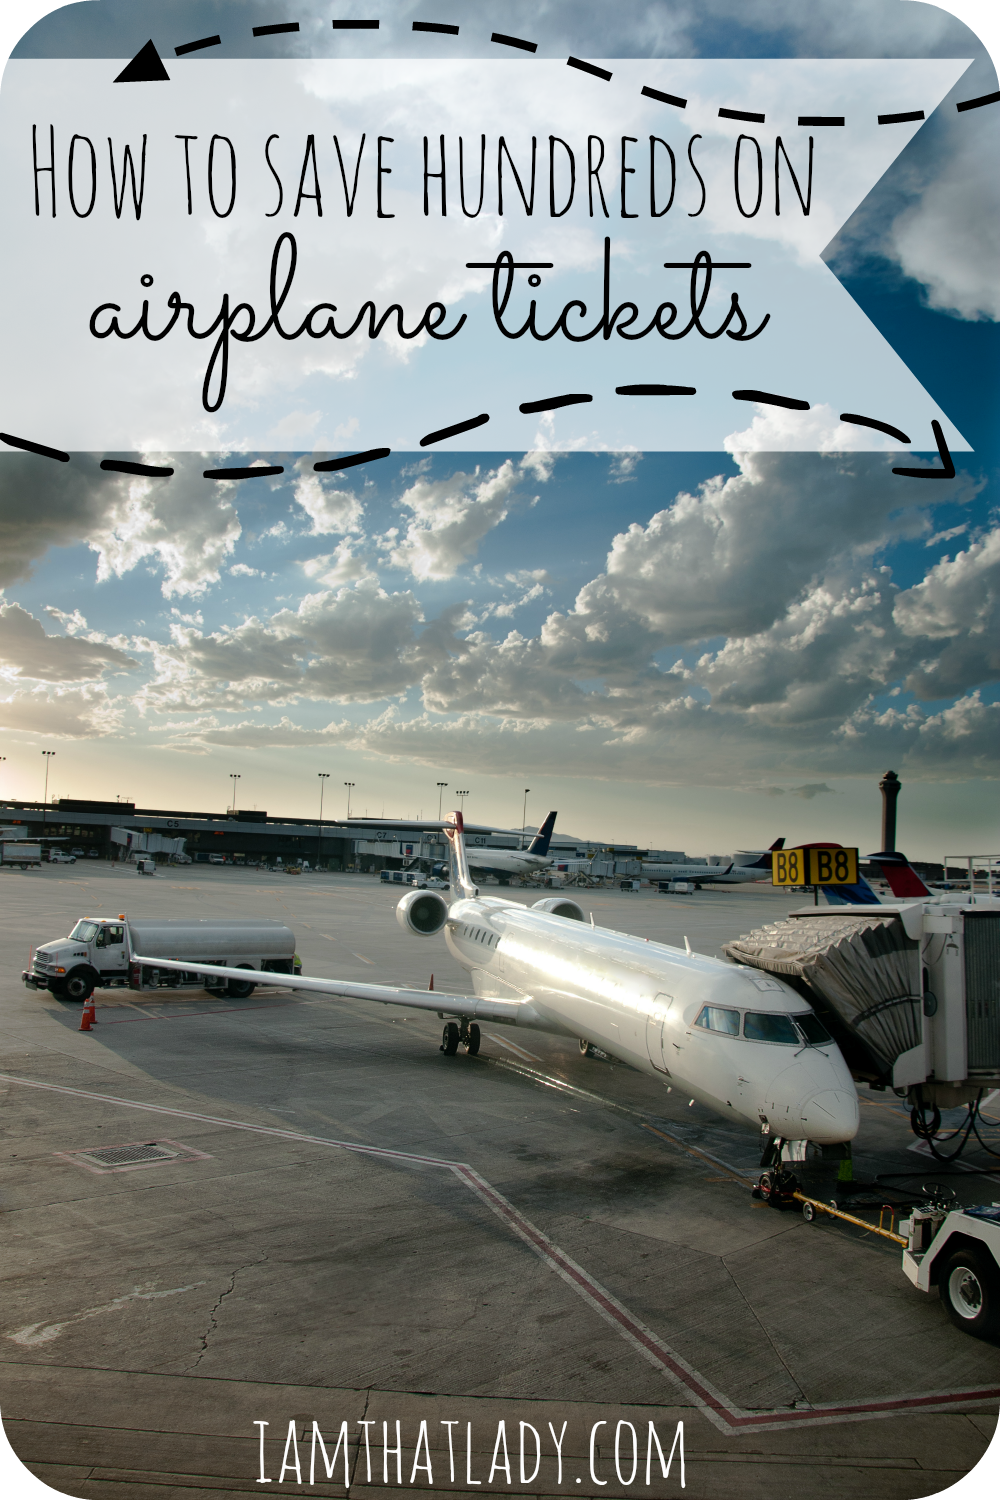 Do you want to save money on airplane tickets? Here are 10 ways to save hundreds per ticket!